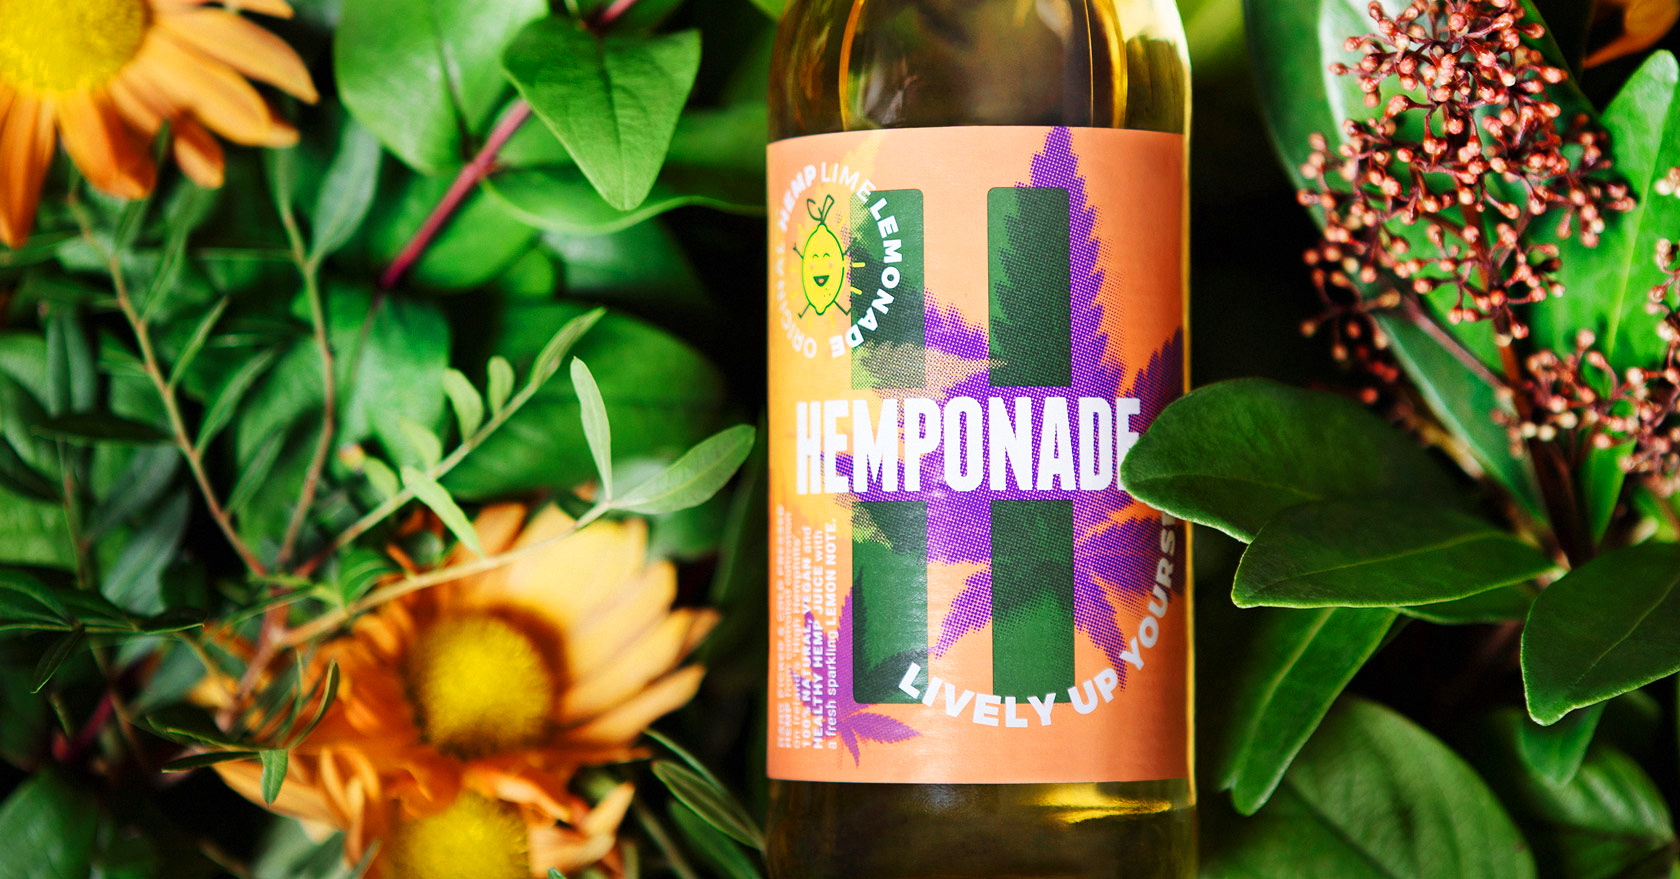 Branding and Packaging Design for Hemponade®